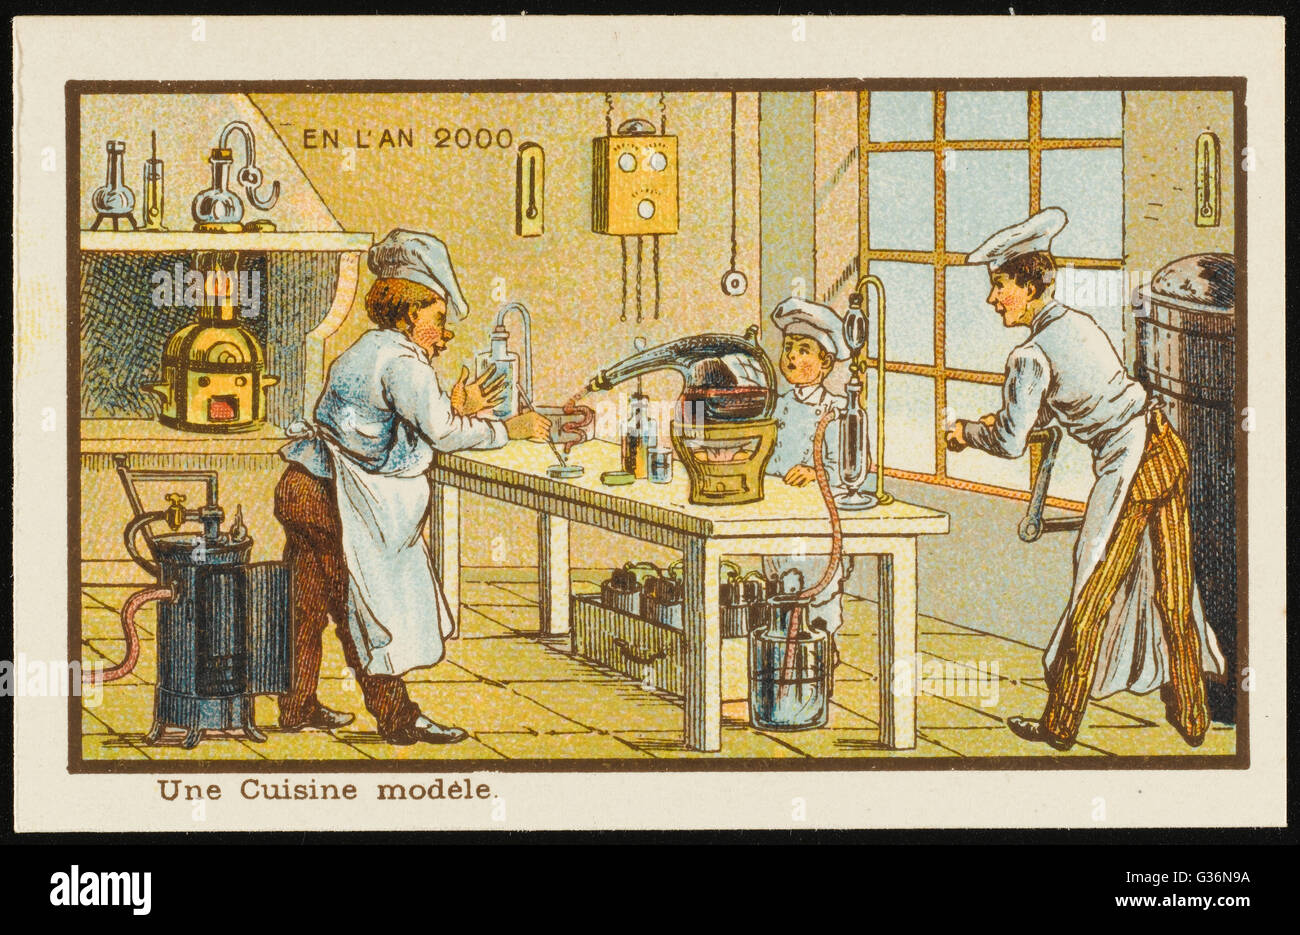 A futuristic automated kitchen, where machines do most of the work.          Date: 1899 - Stock Image